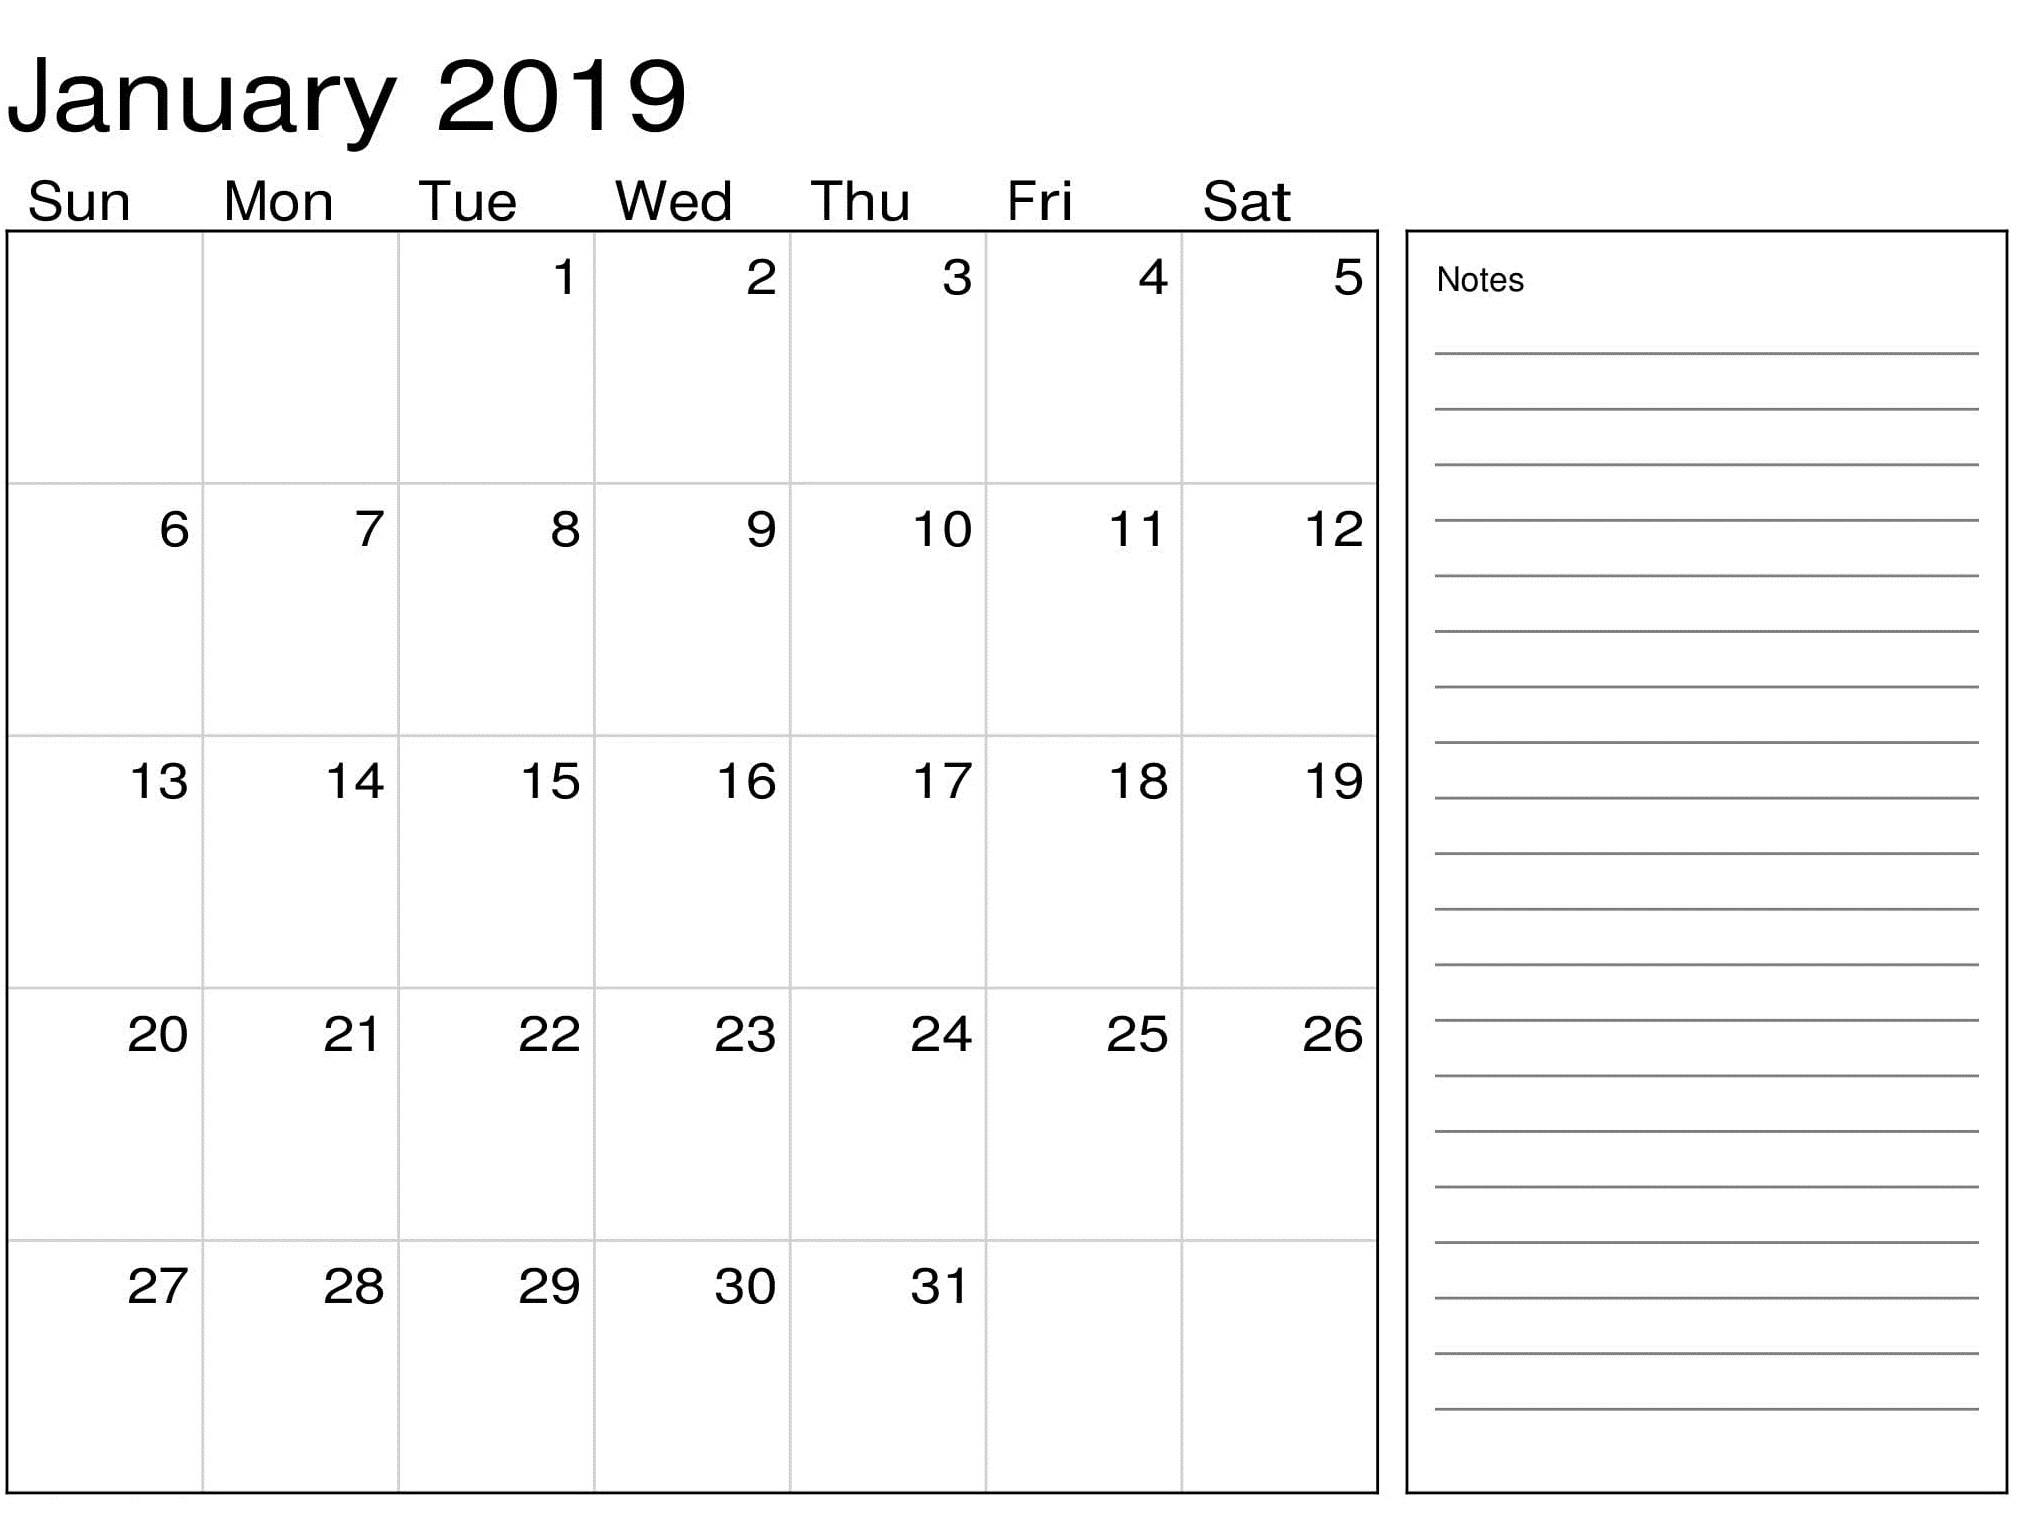 January Calendar 2019 With Notes